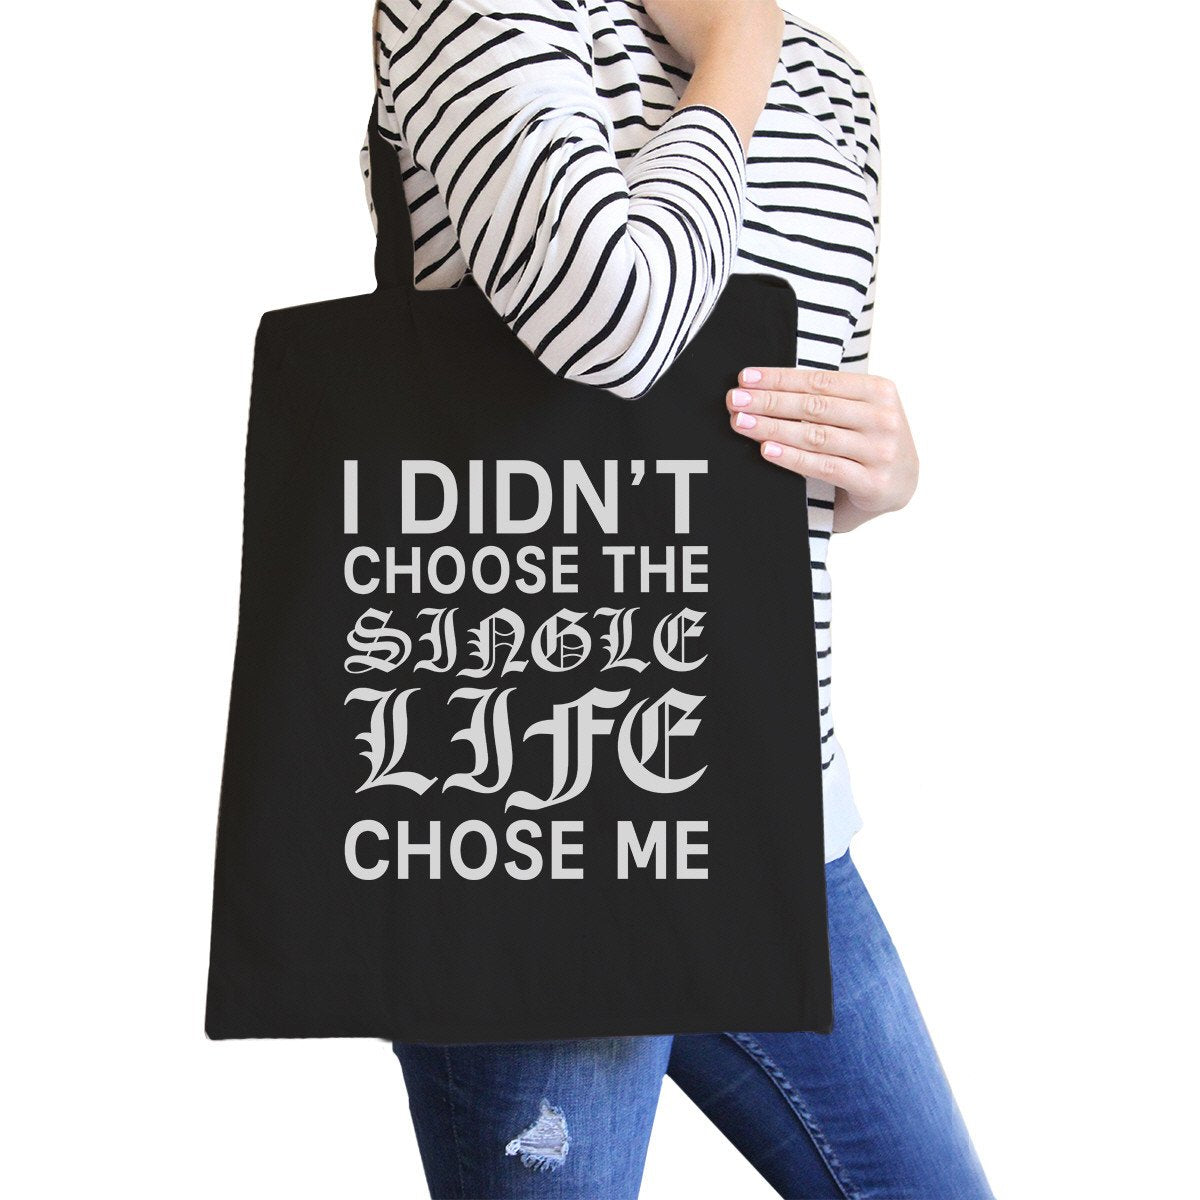 Single Life Chose Me Black Canvas Bag Funny Quote Gifts For Singles